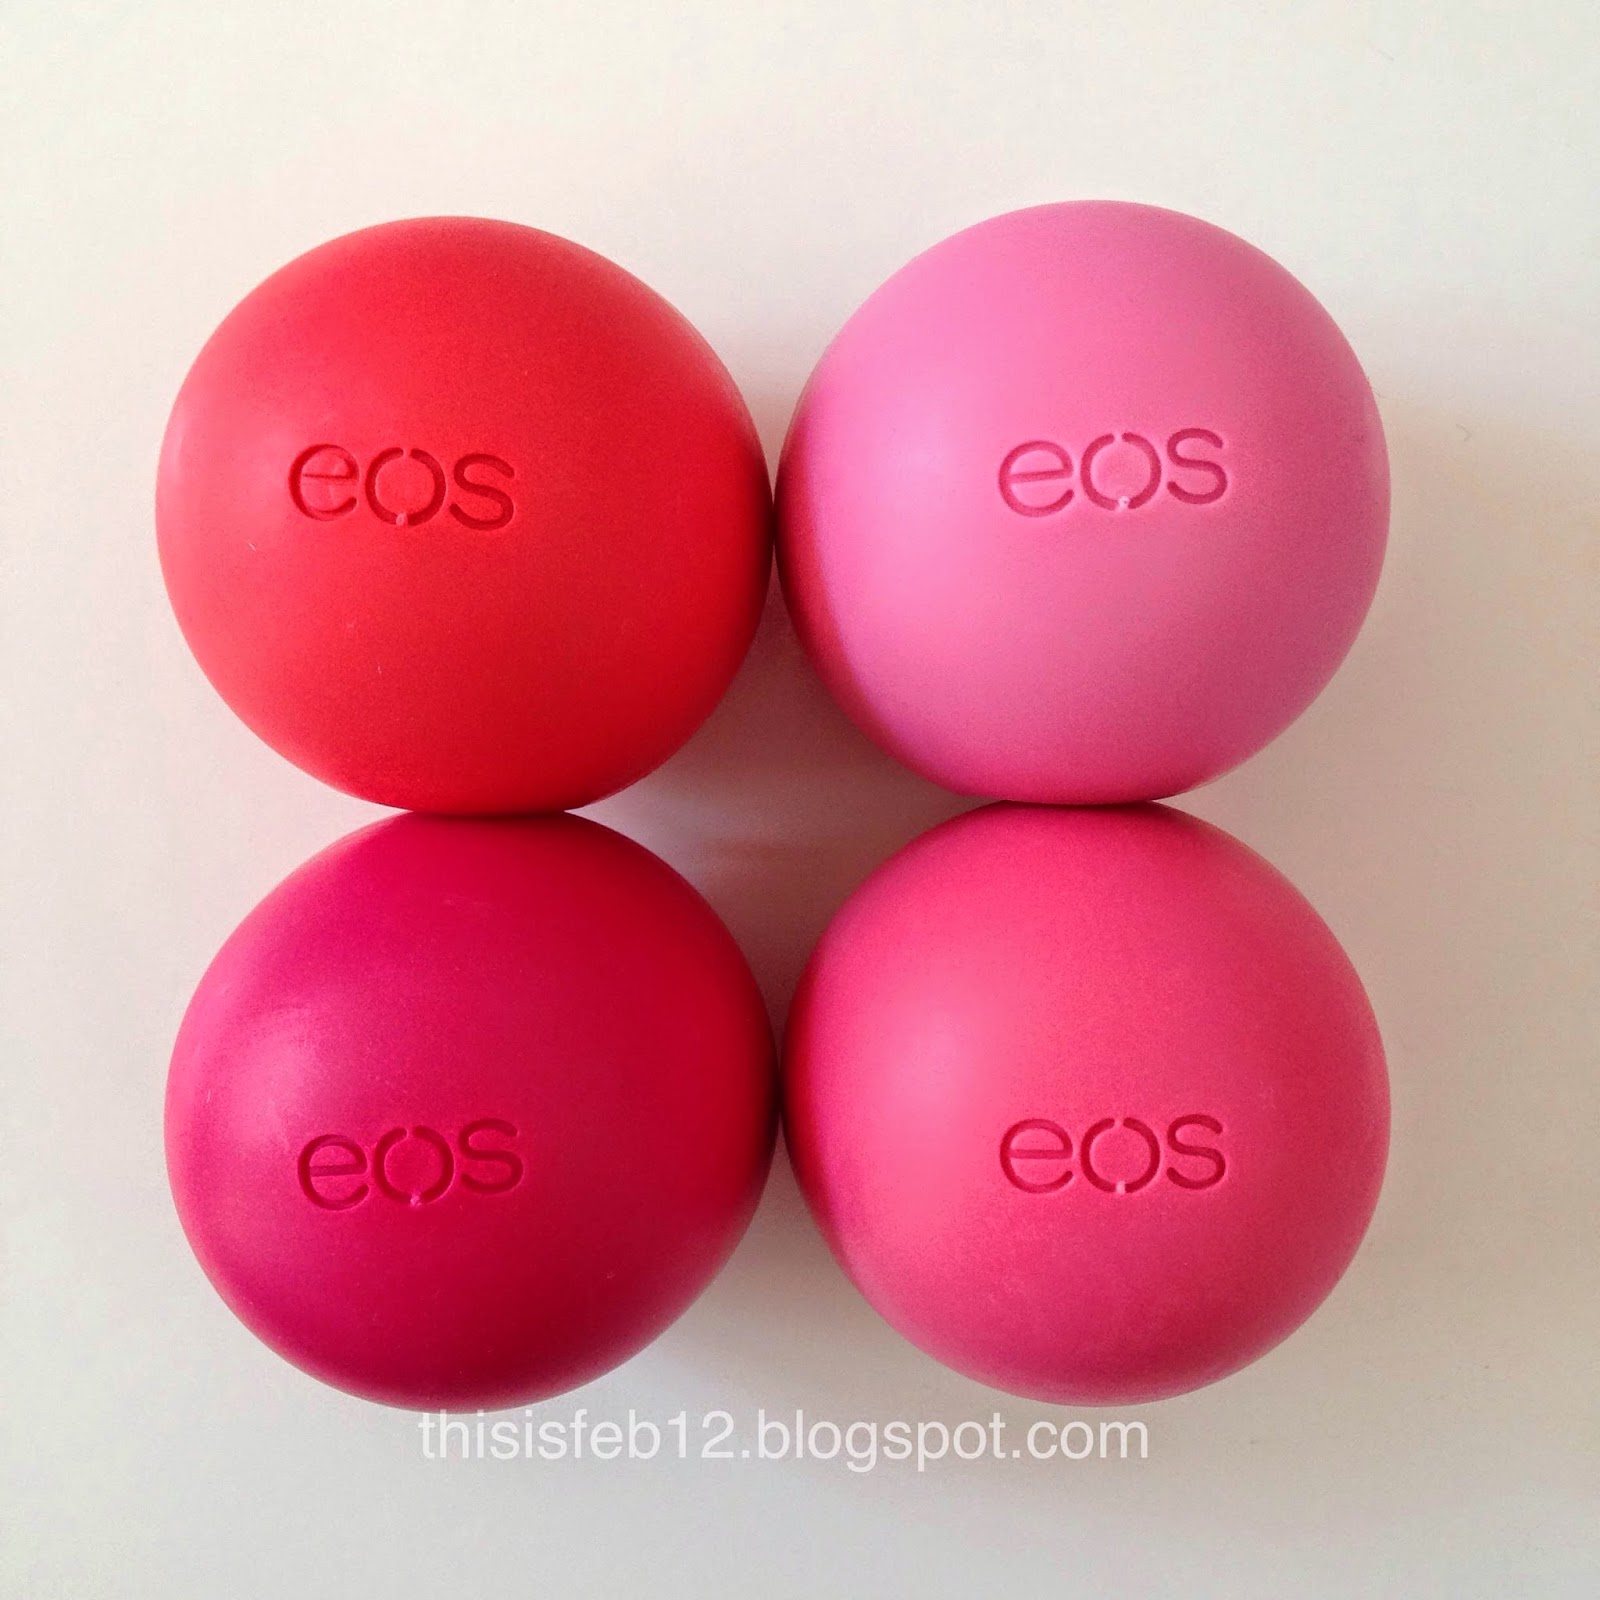 THISISFEB12: Review: EOS Smooth Sphere Lip Balm in Fresh ...